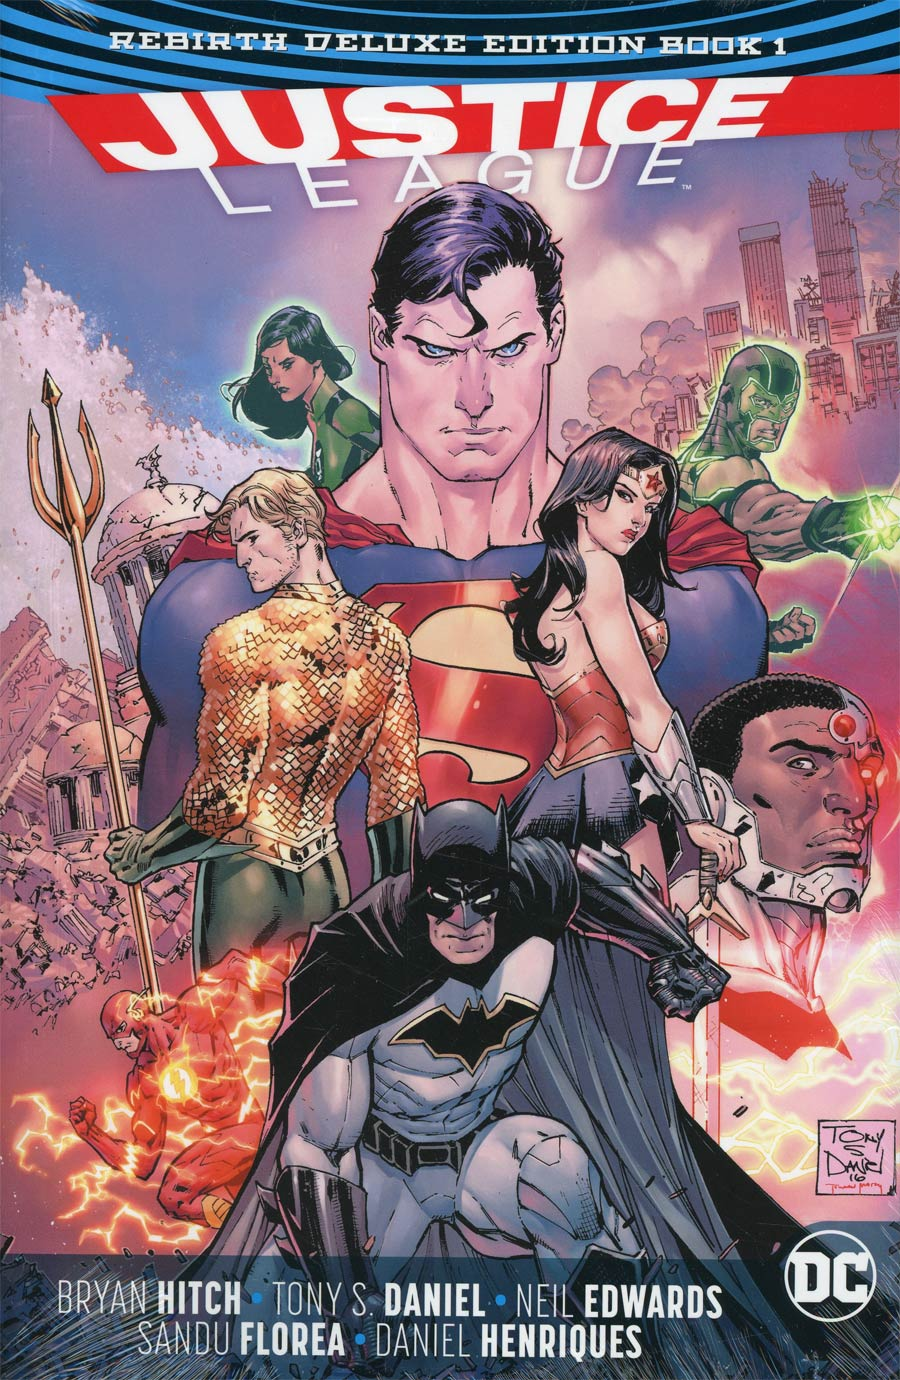 Justice League Rebirth Deluxe Edition Book 1 HC